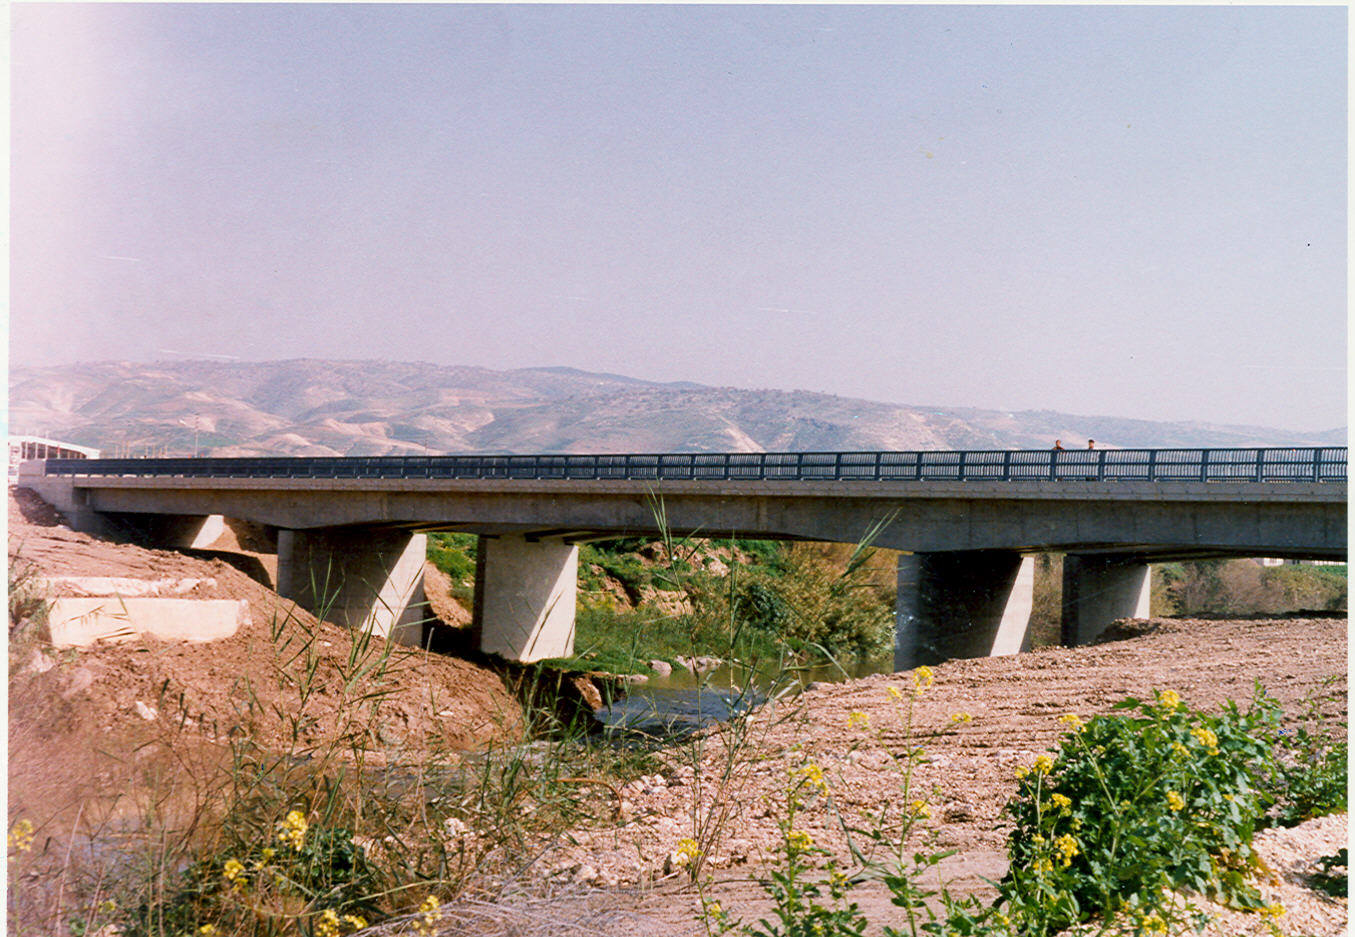 Sheikh Hussein Bridge Crossing Jordan River